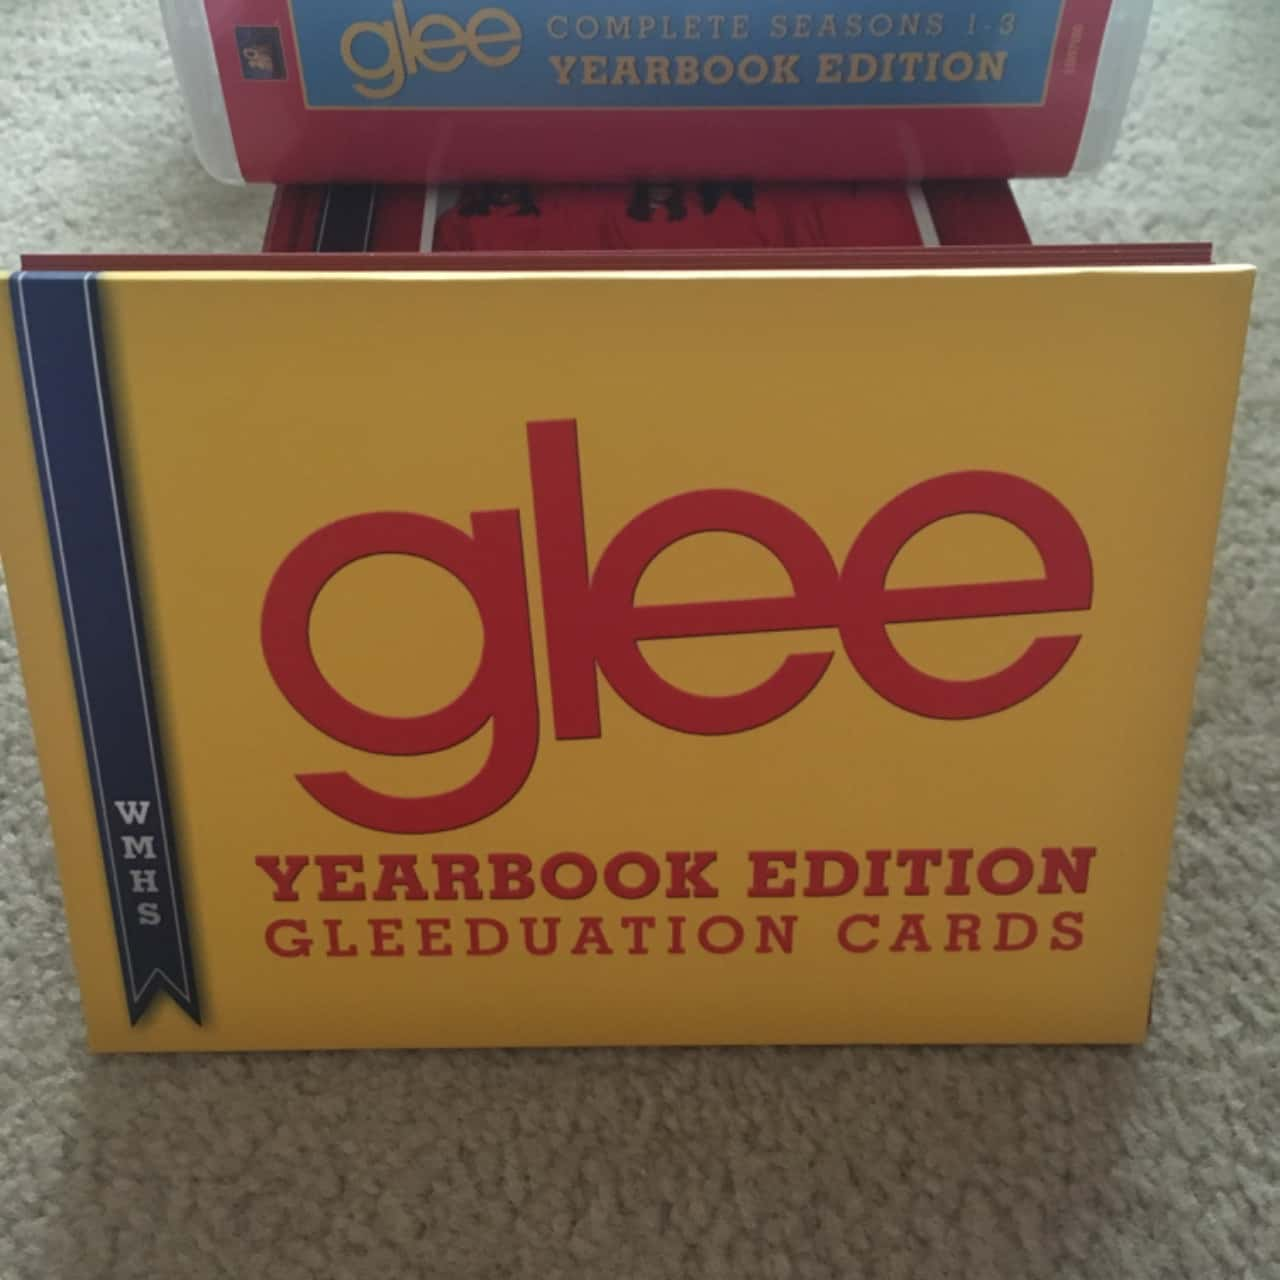 Glee DVD Boxed Set - Complete Season 1-3, Year Book Edition, Region 4/ PAL